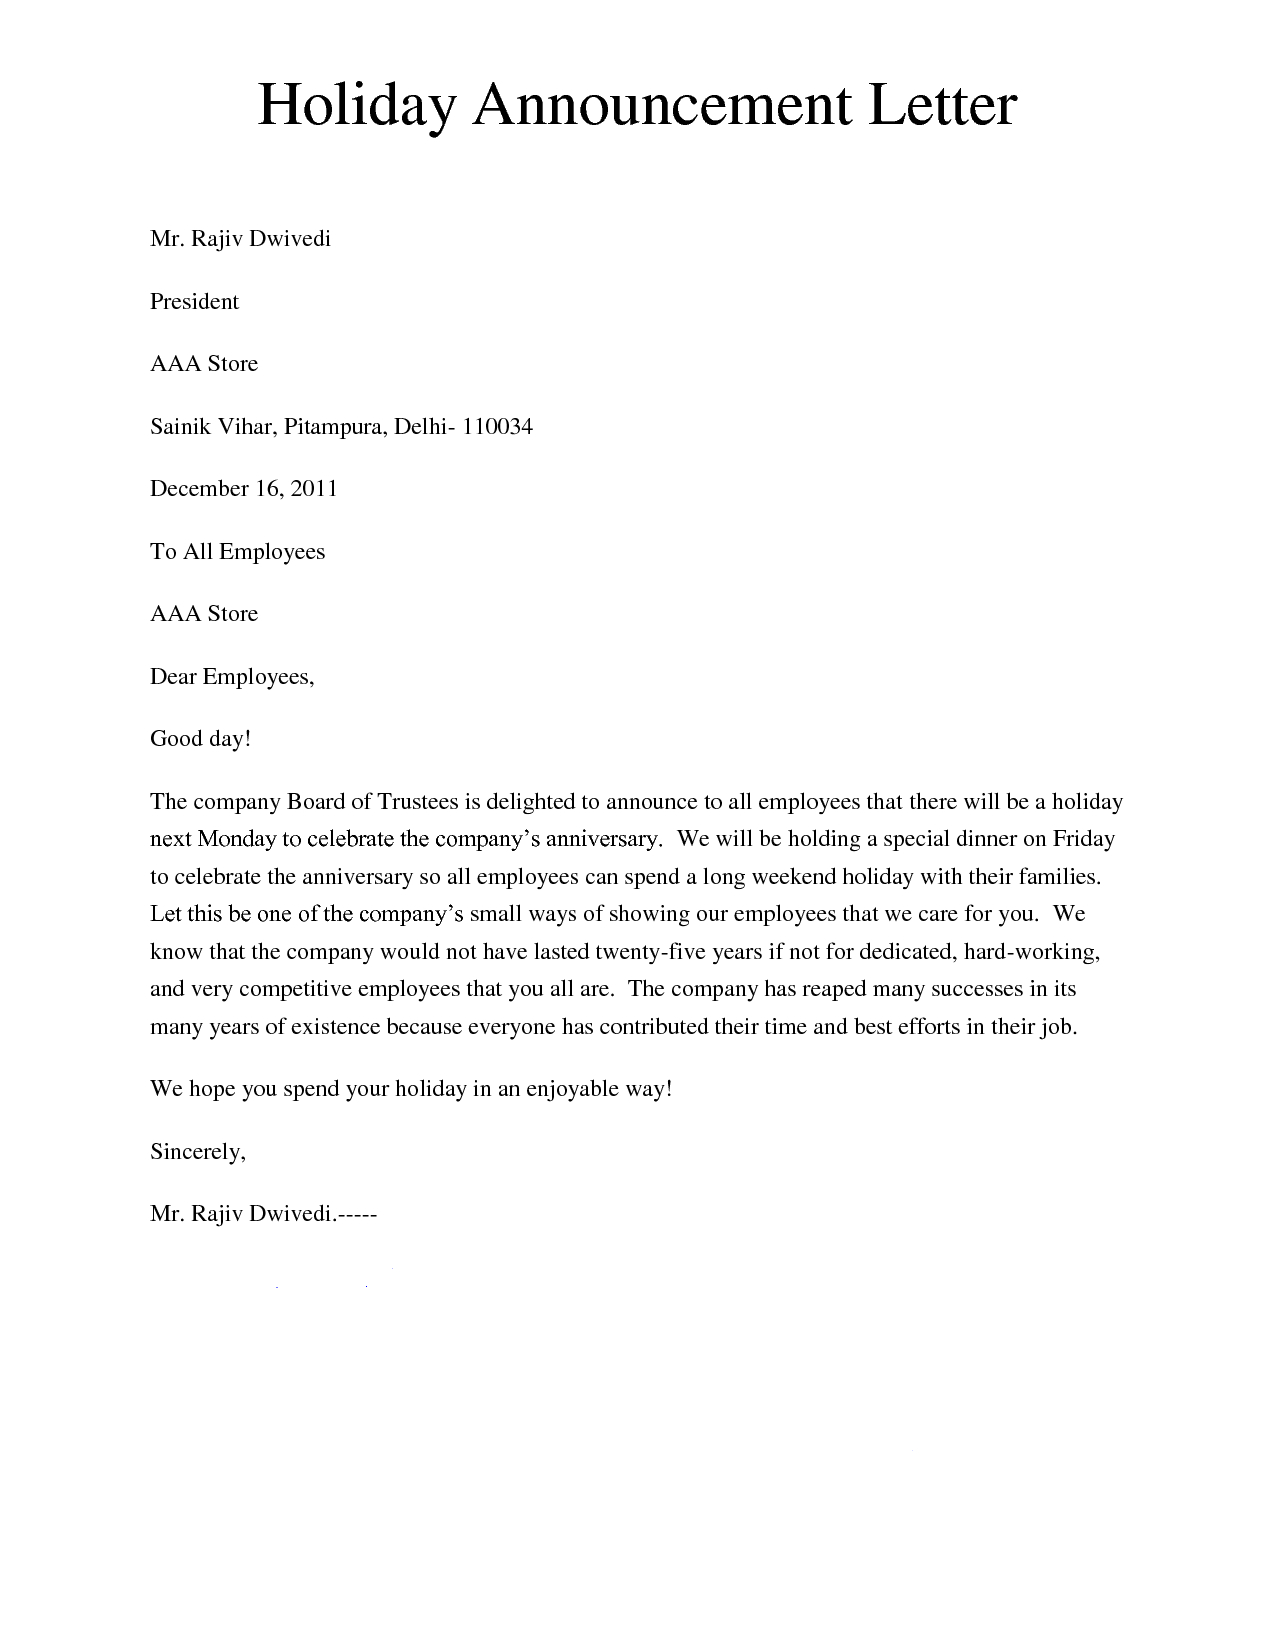 Holiday Letter Template - Holiday Announcement Letter Giving A Letter to Inform About the